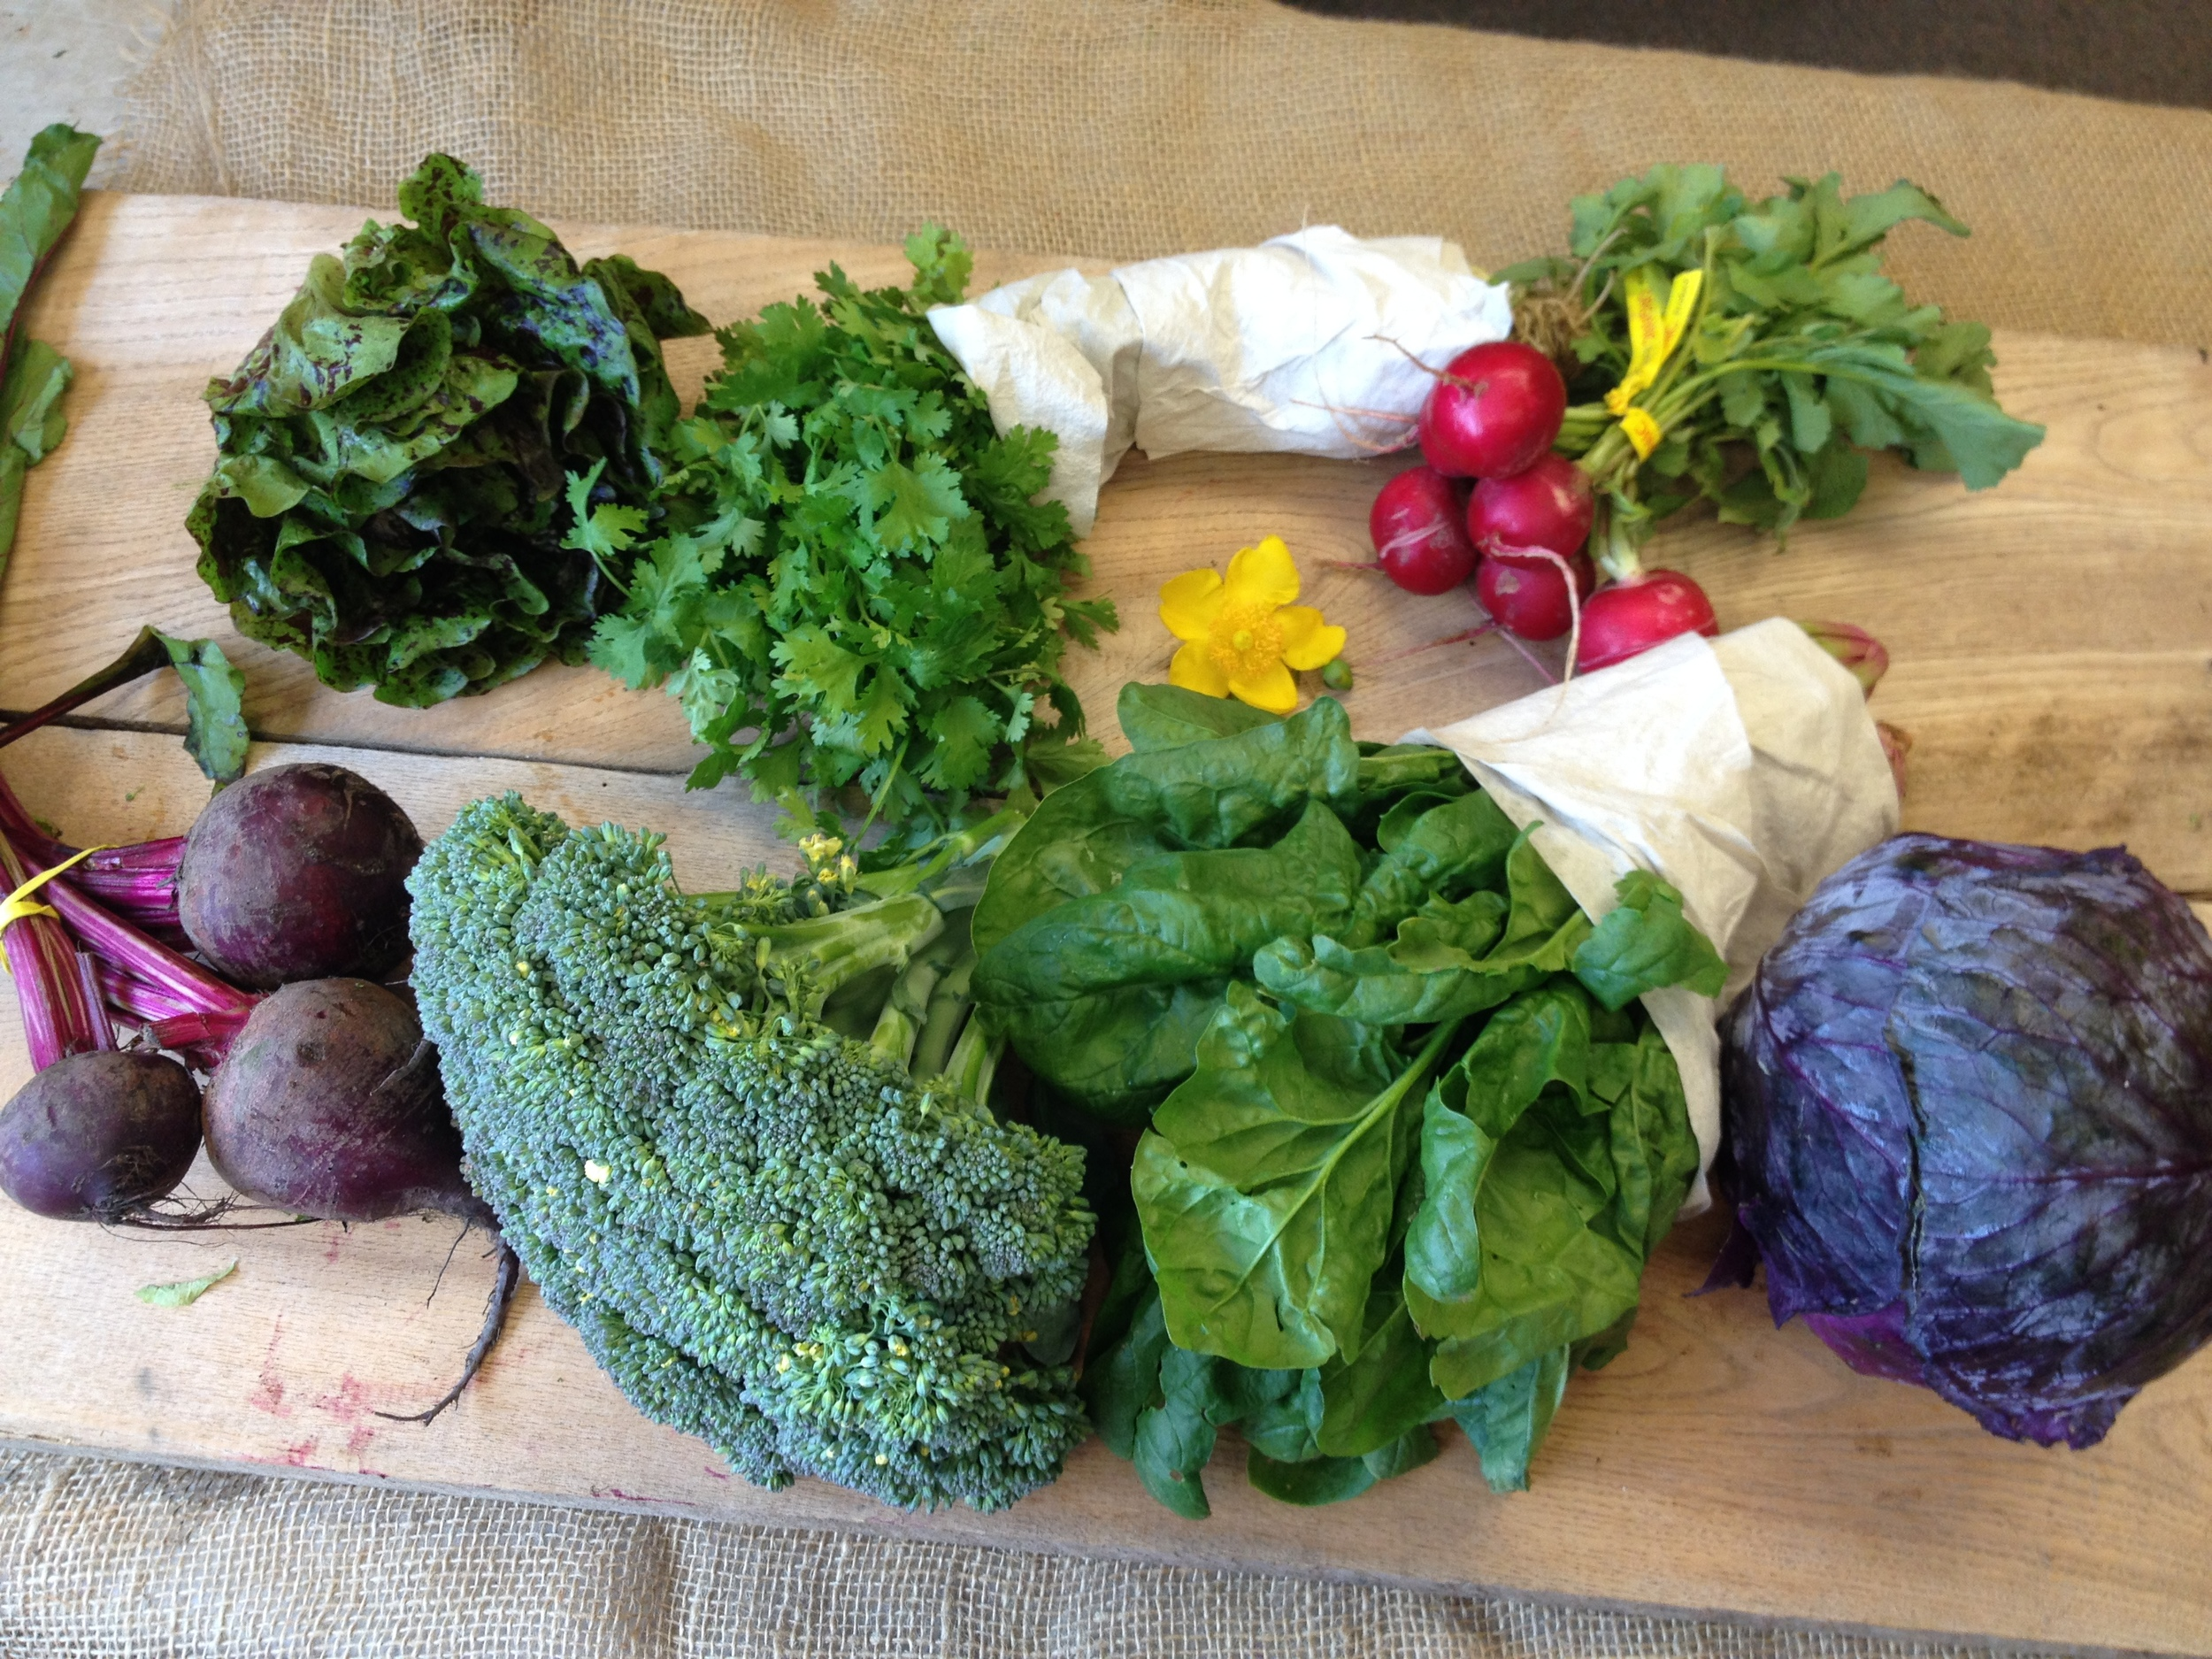 Southern Comfort small (in order from left to right) Lettuce, Herbs, Radishes, beets, broccoli, spinach, red cabbage.